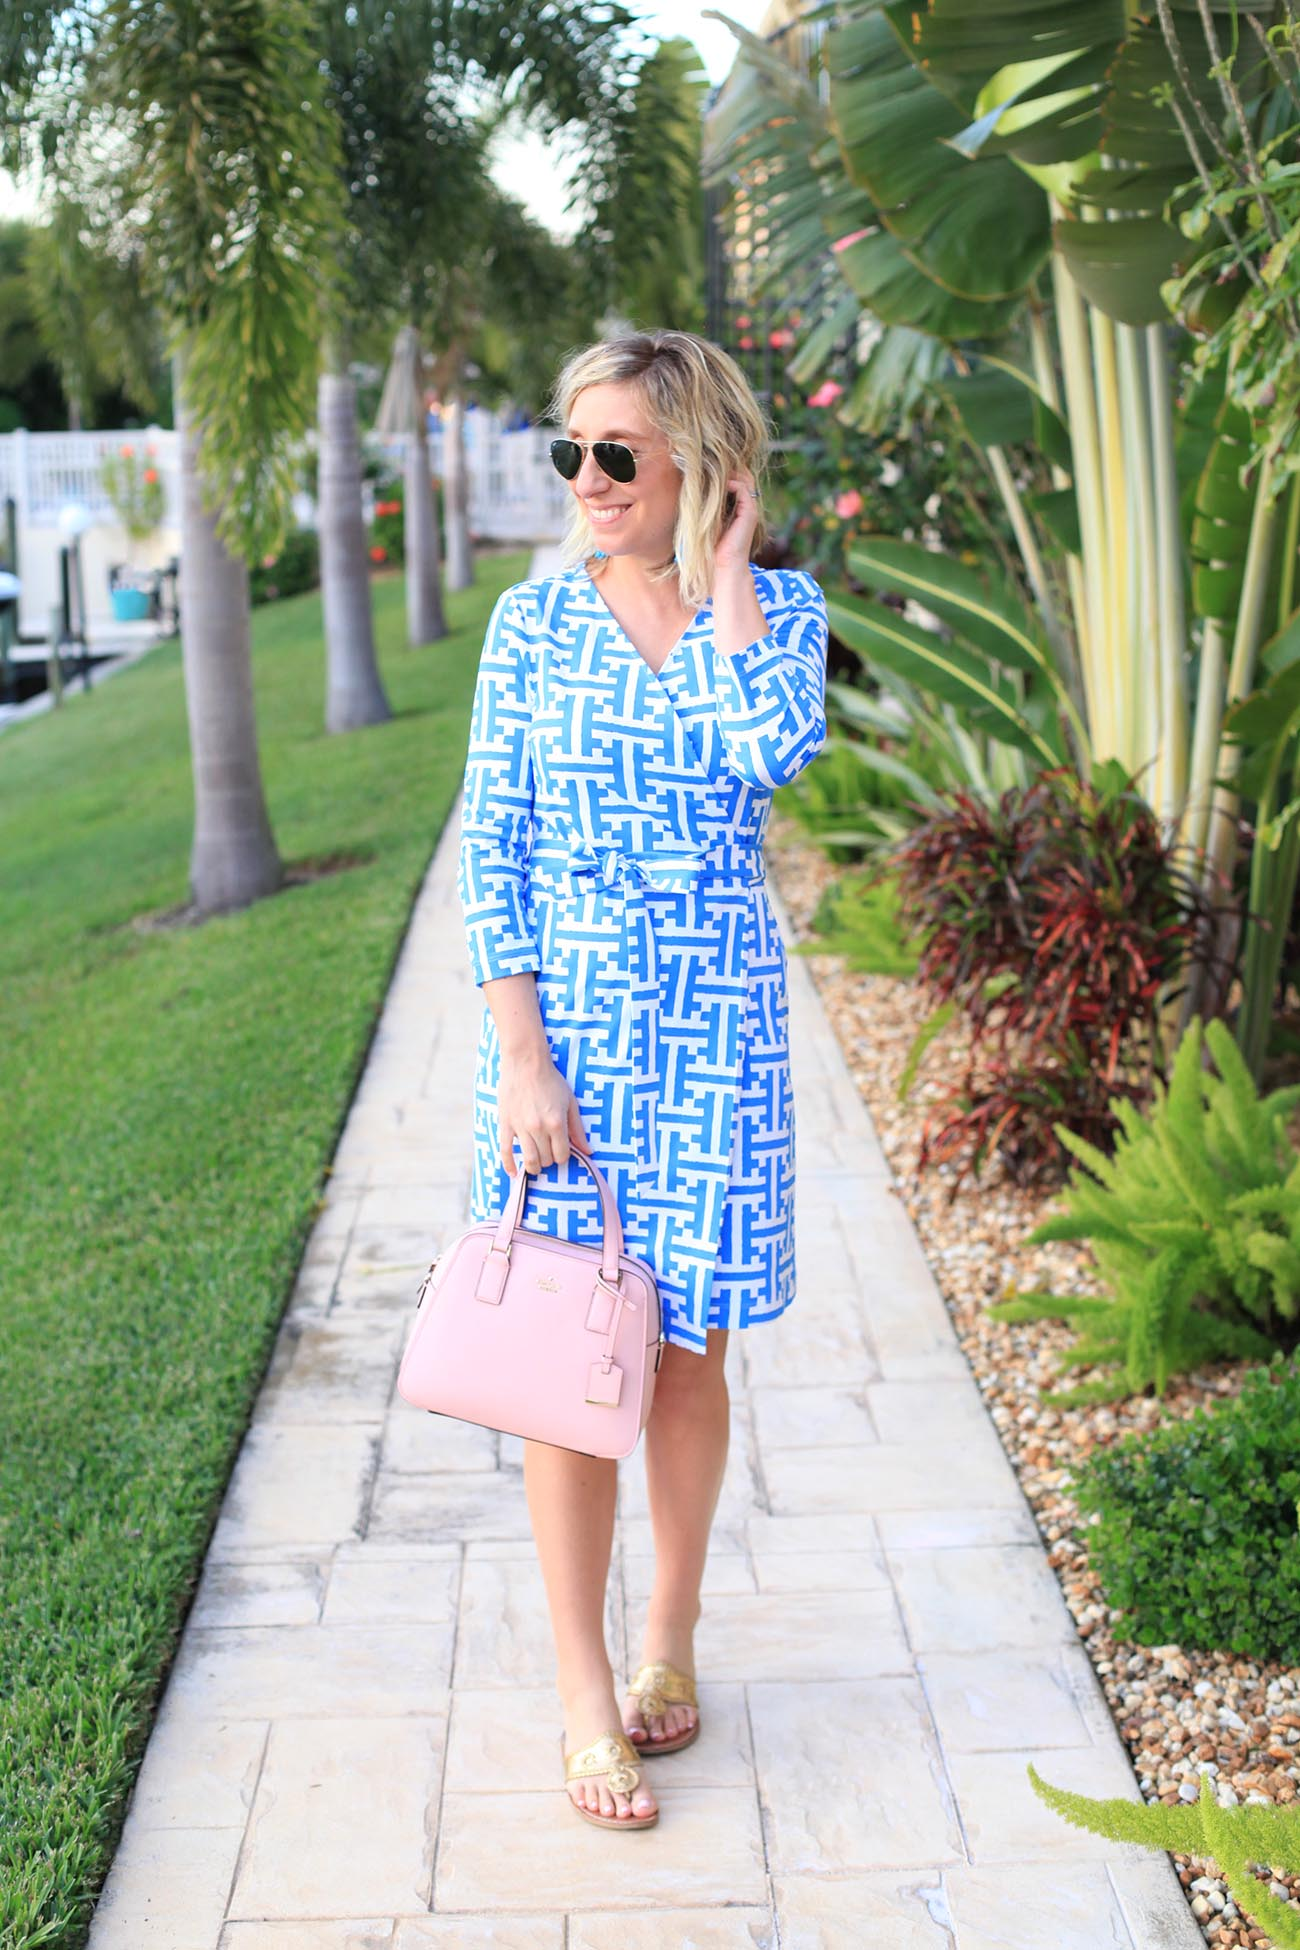 Lemon Stripes in a Persifor Wrap Dress and Kate Spade Bag